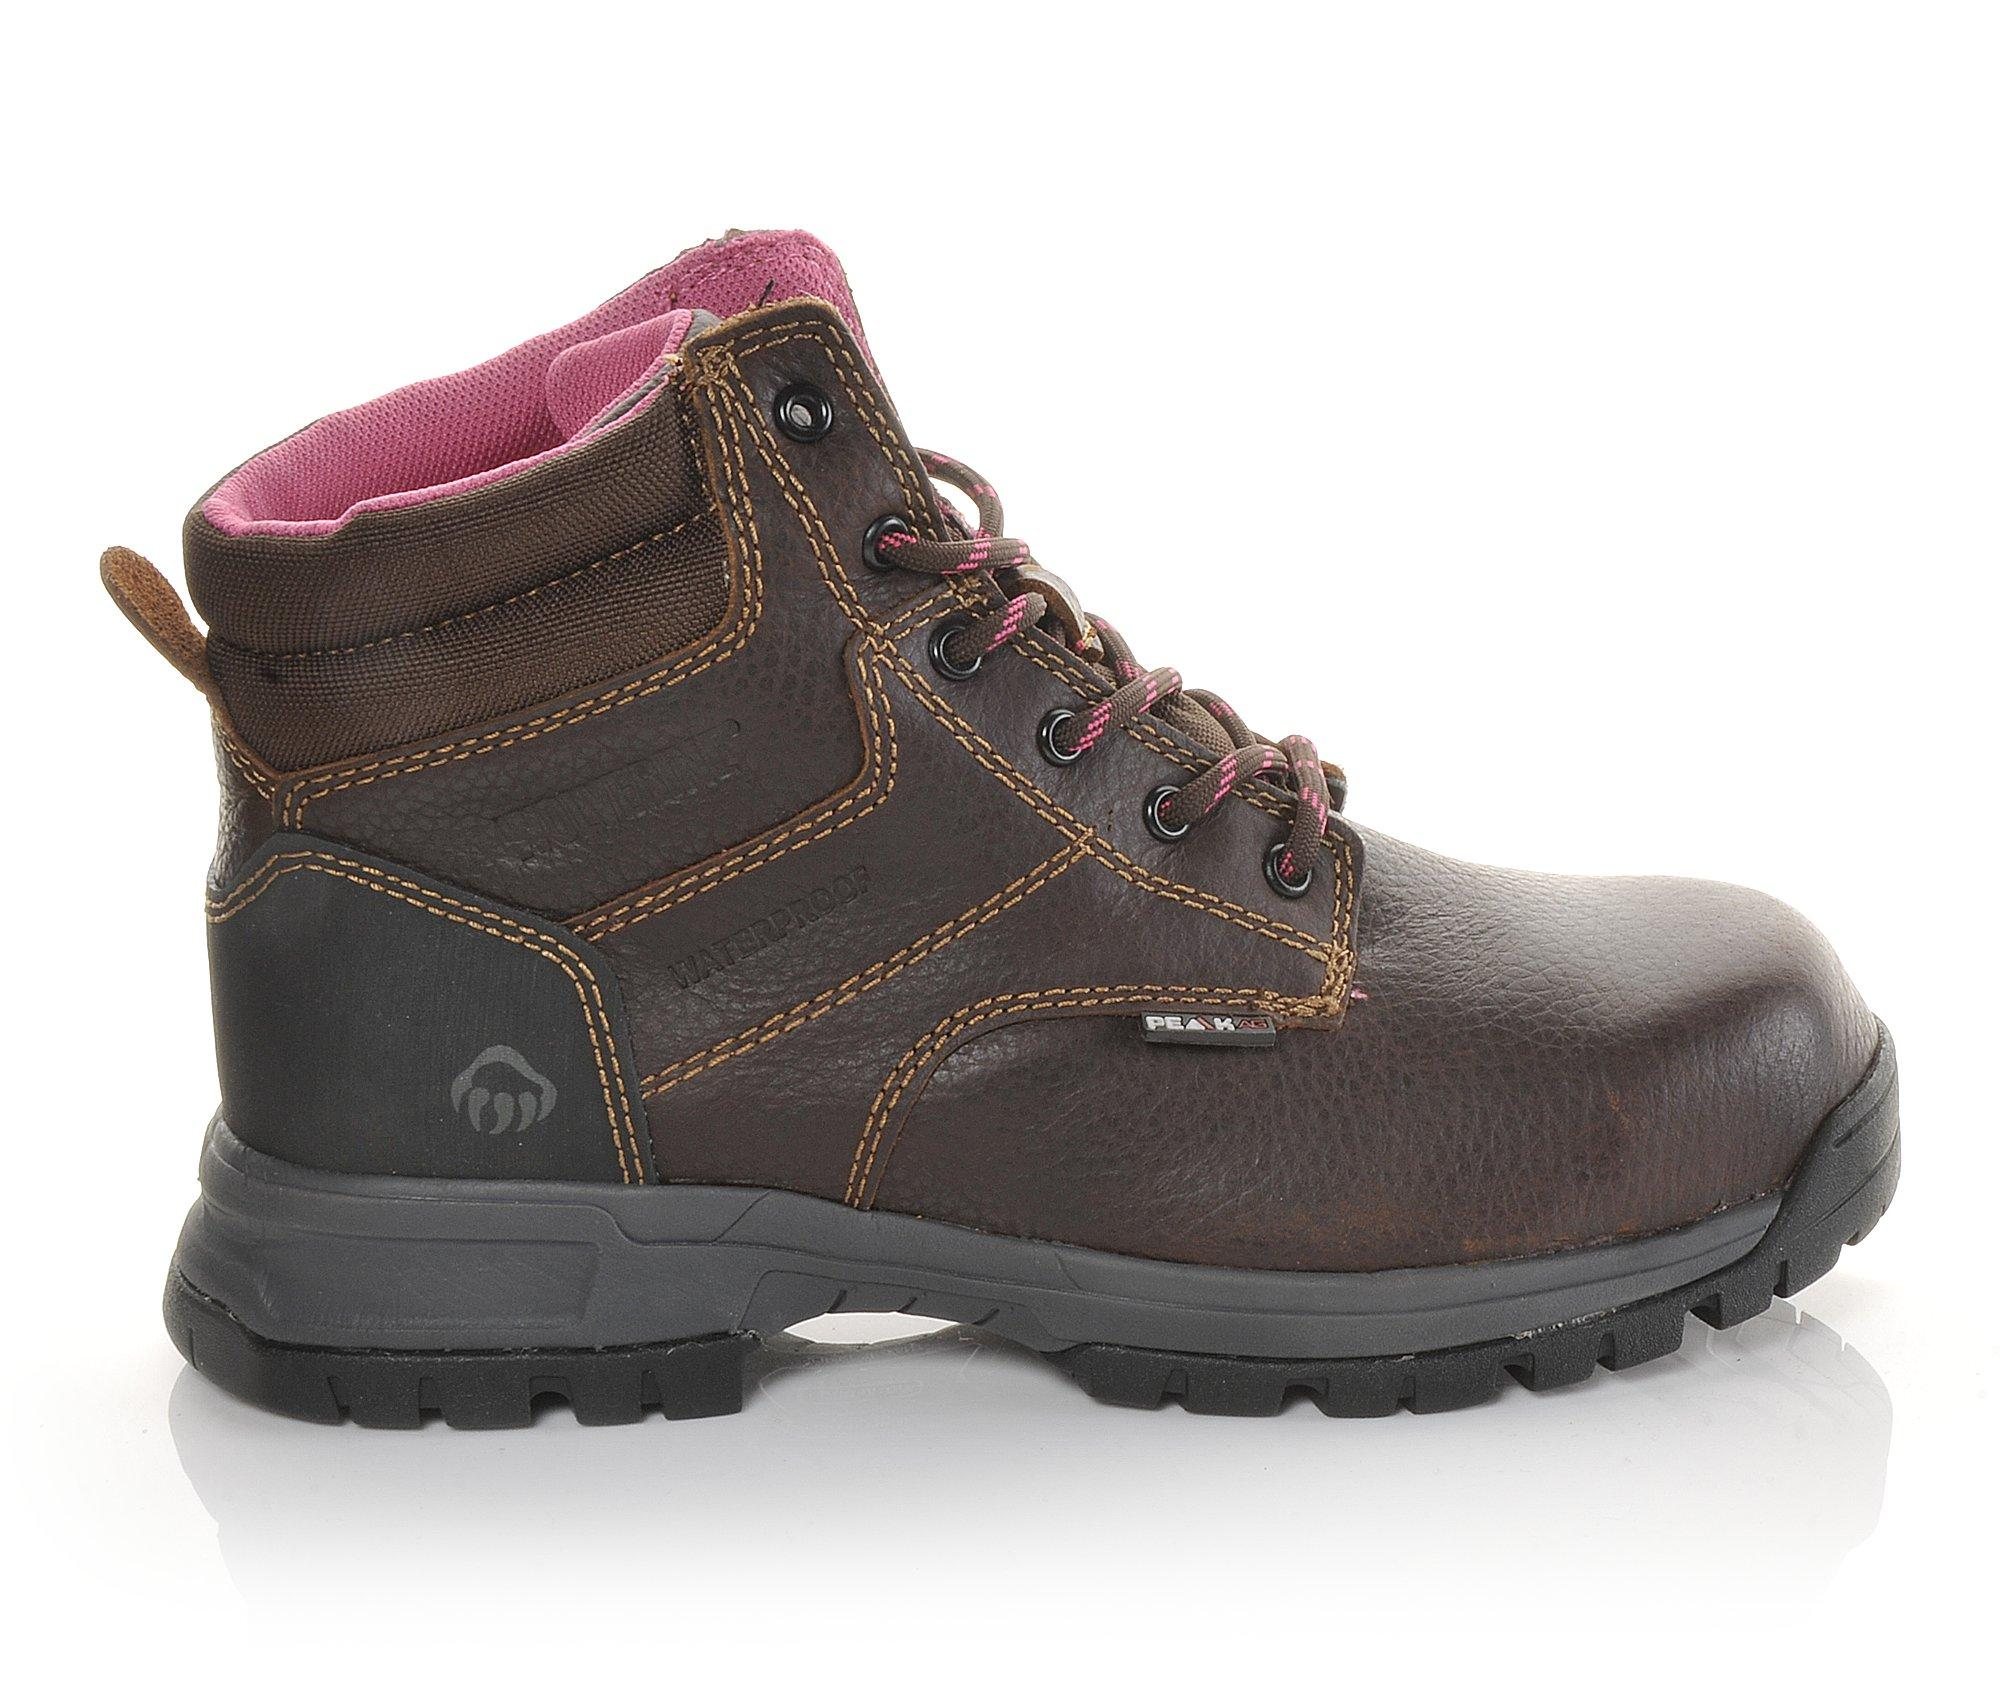 steel toe shoes for women piper composite toe work boots ukkzgok